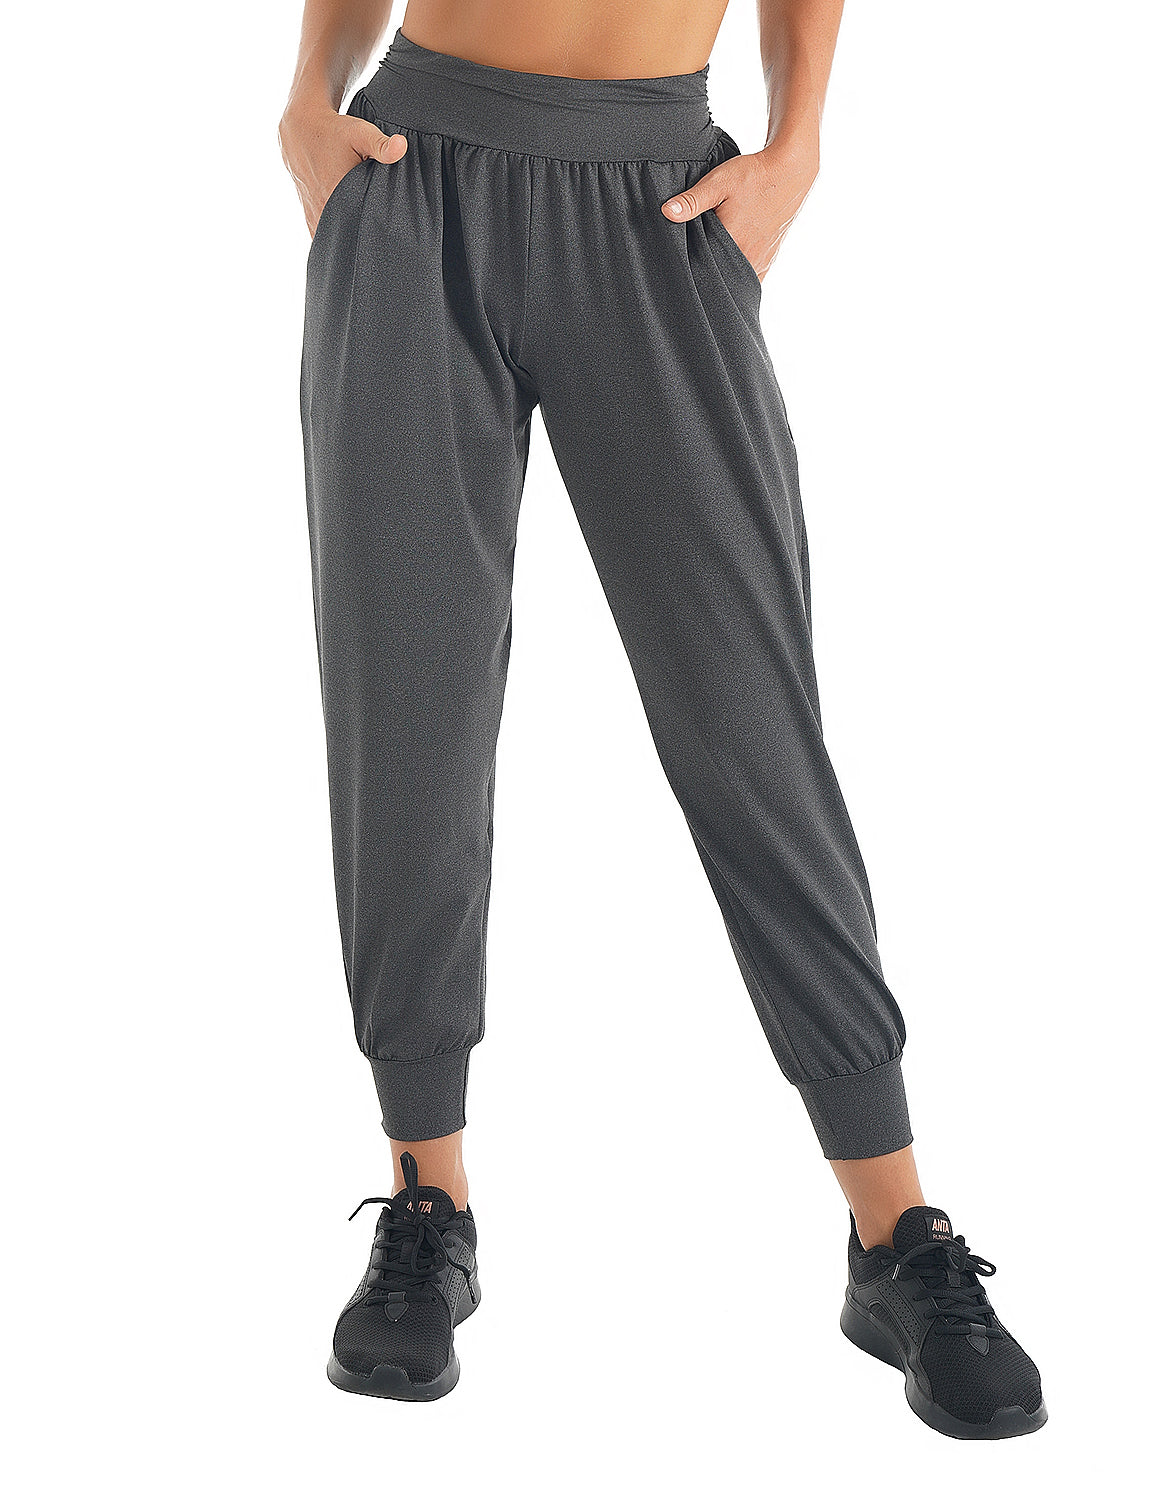 Blooming Jelly_Casual Sweatpants Loose Joggers_Black_255096_02_Women Athletic Comfy Outfits_Bottoms_Joggers